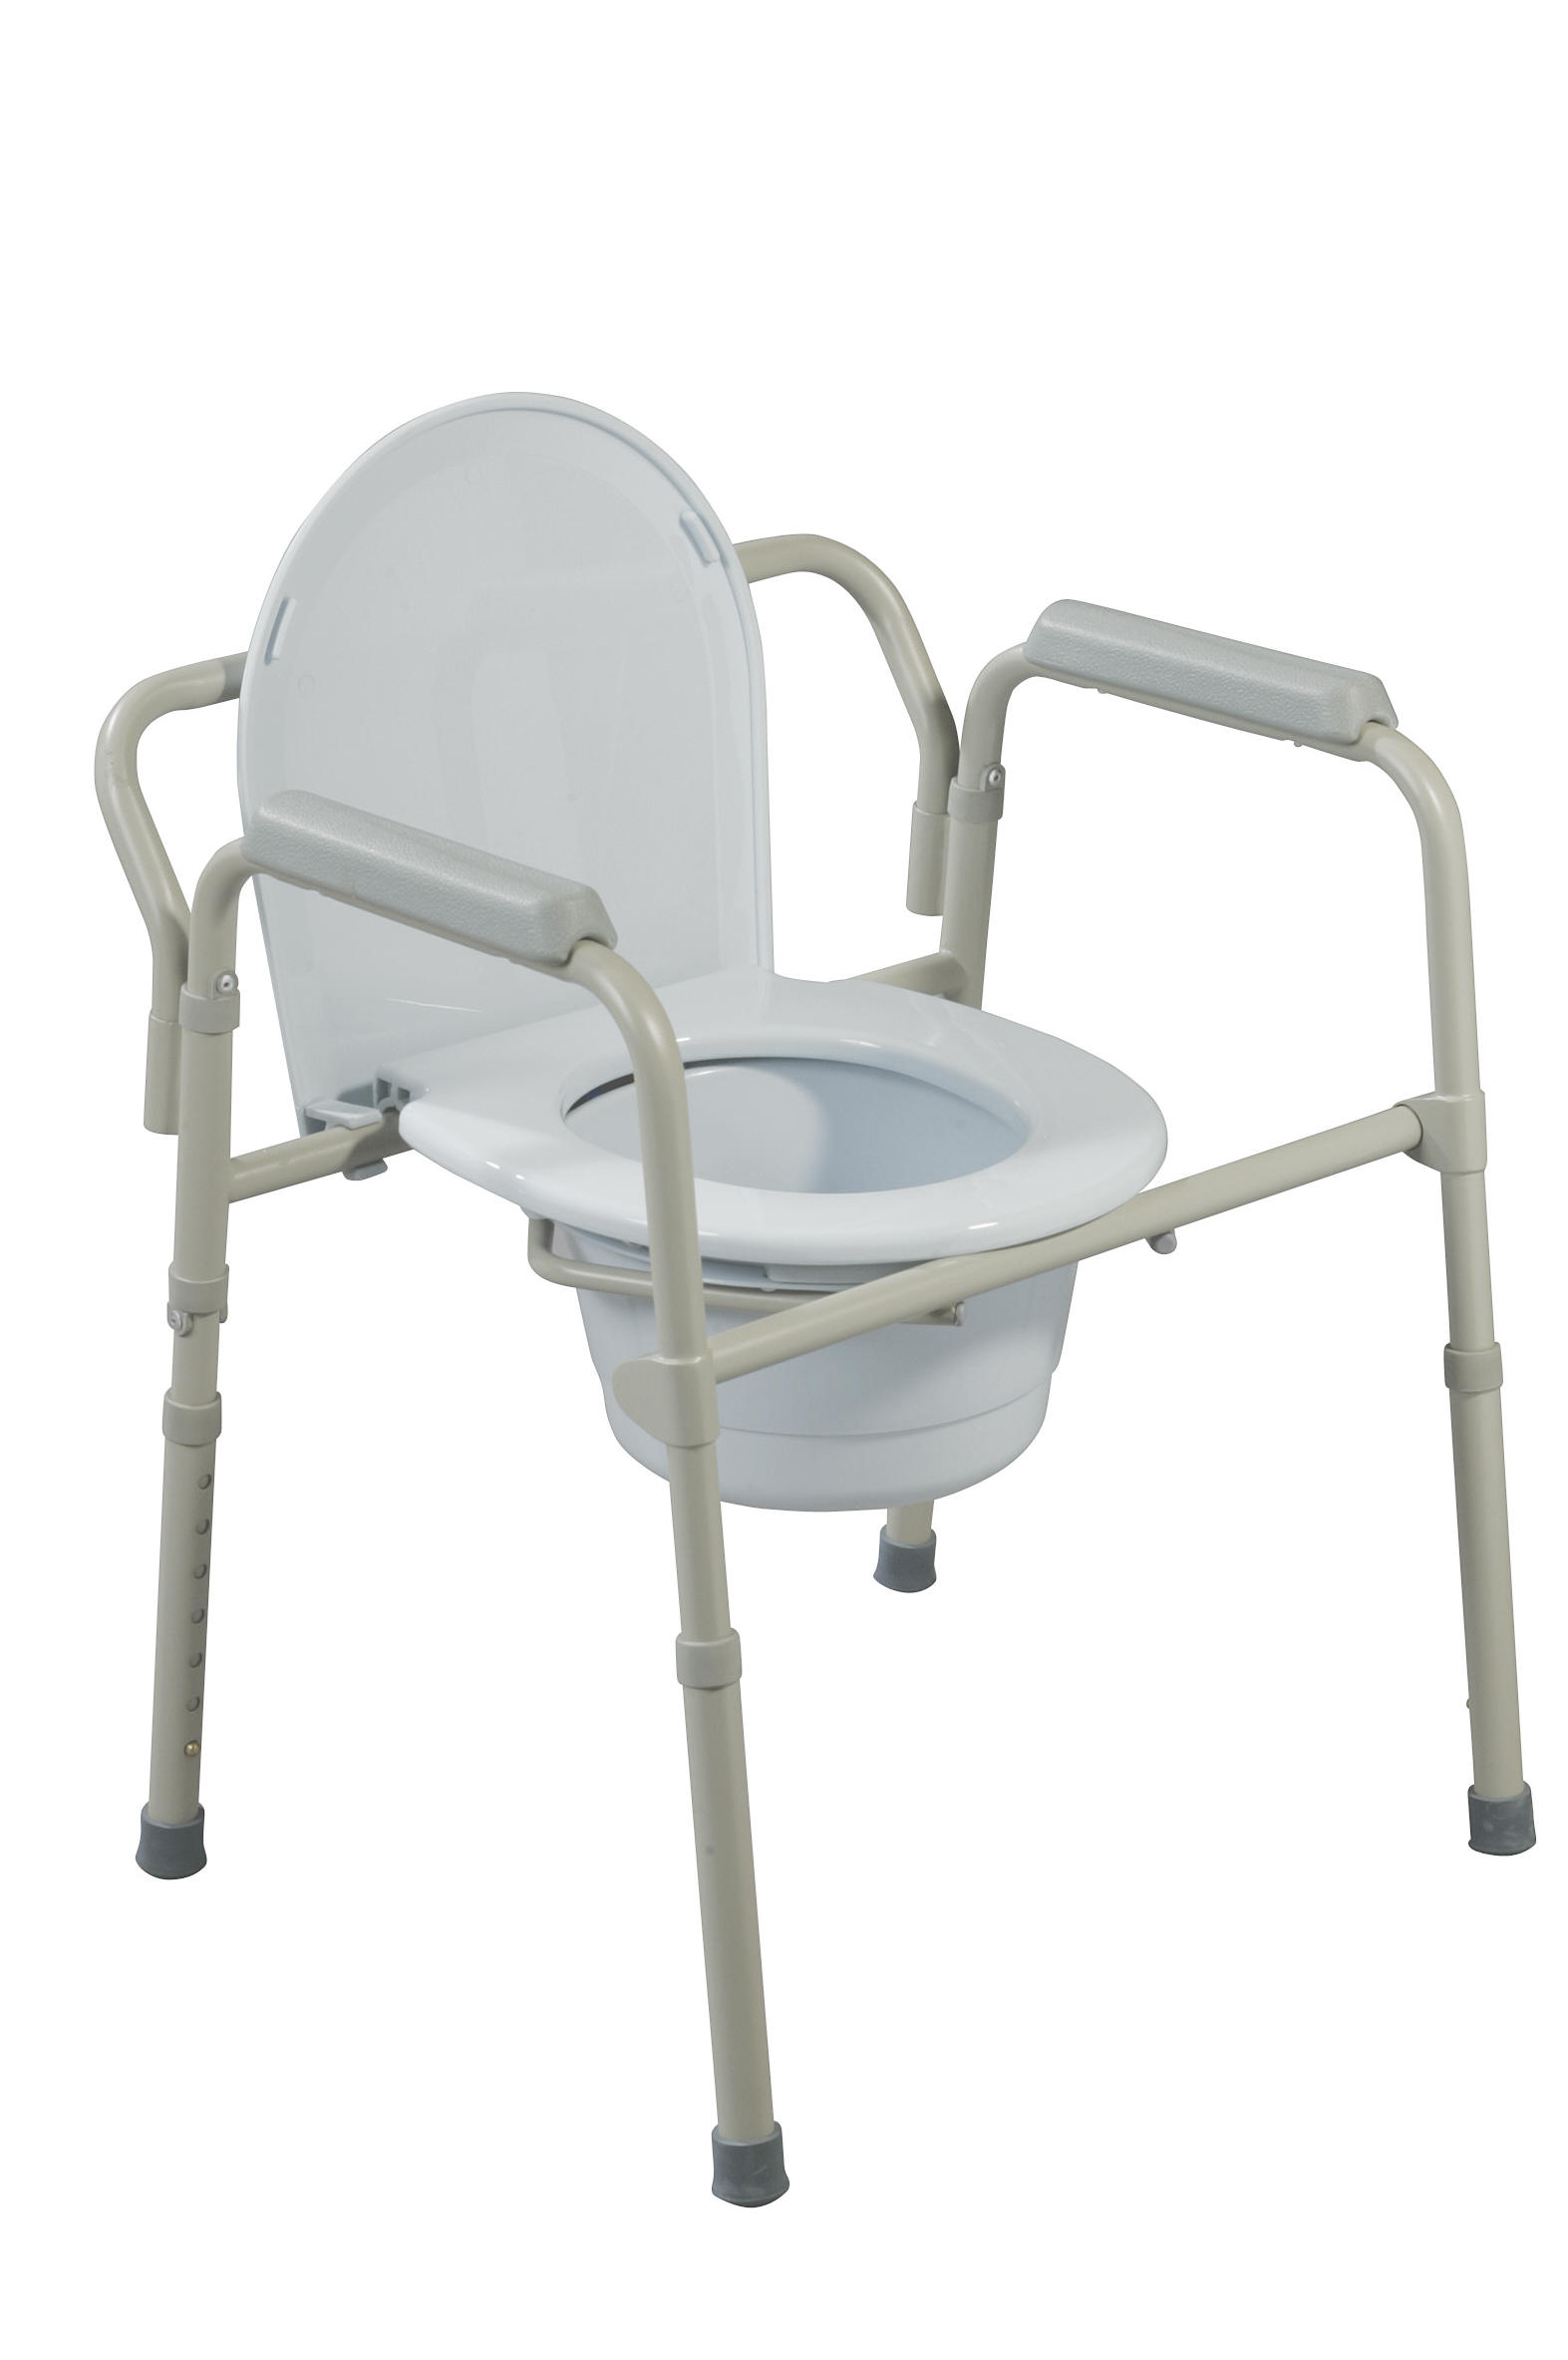 Bedside Commode Chair Bath Chair Bath Bench Shower Chair Tub Transfer Bench